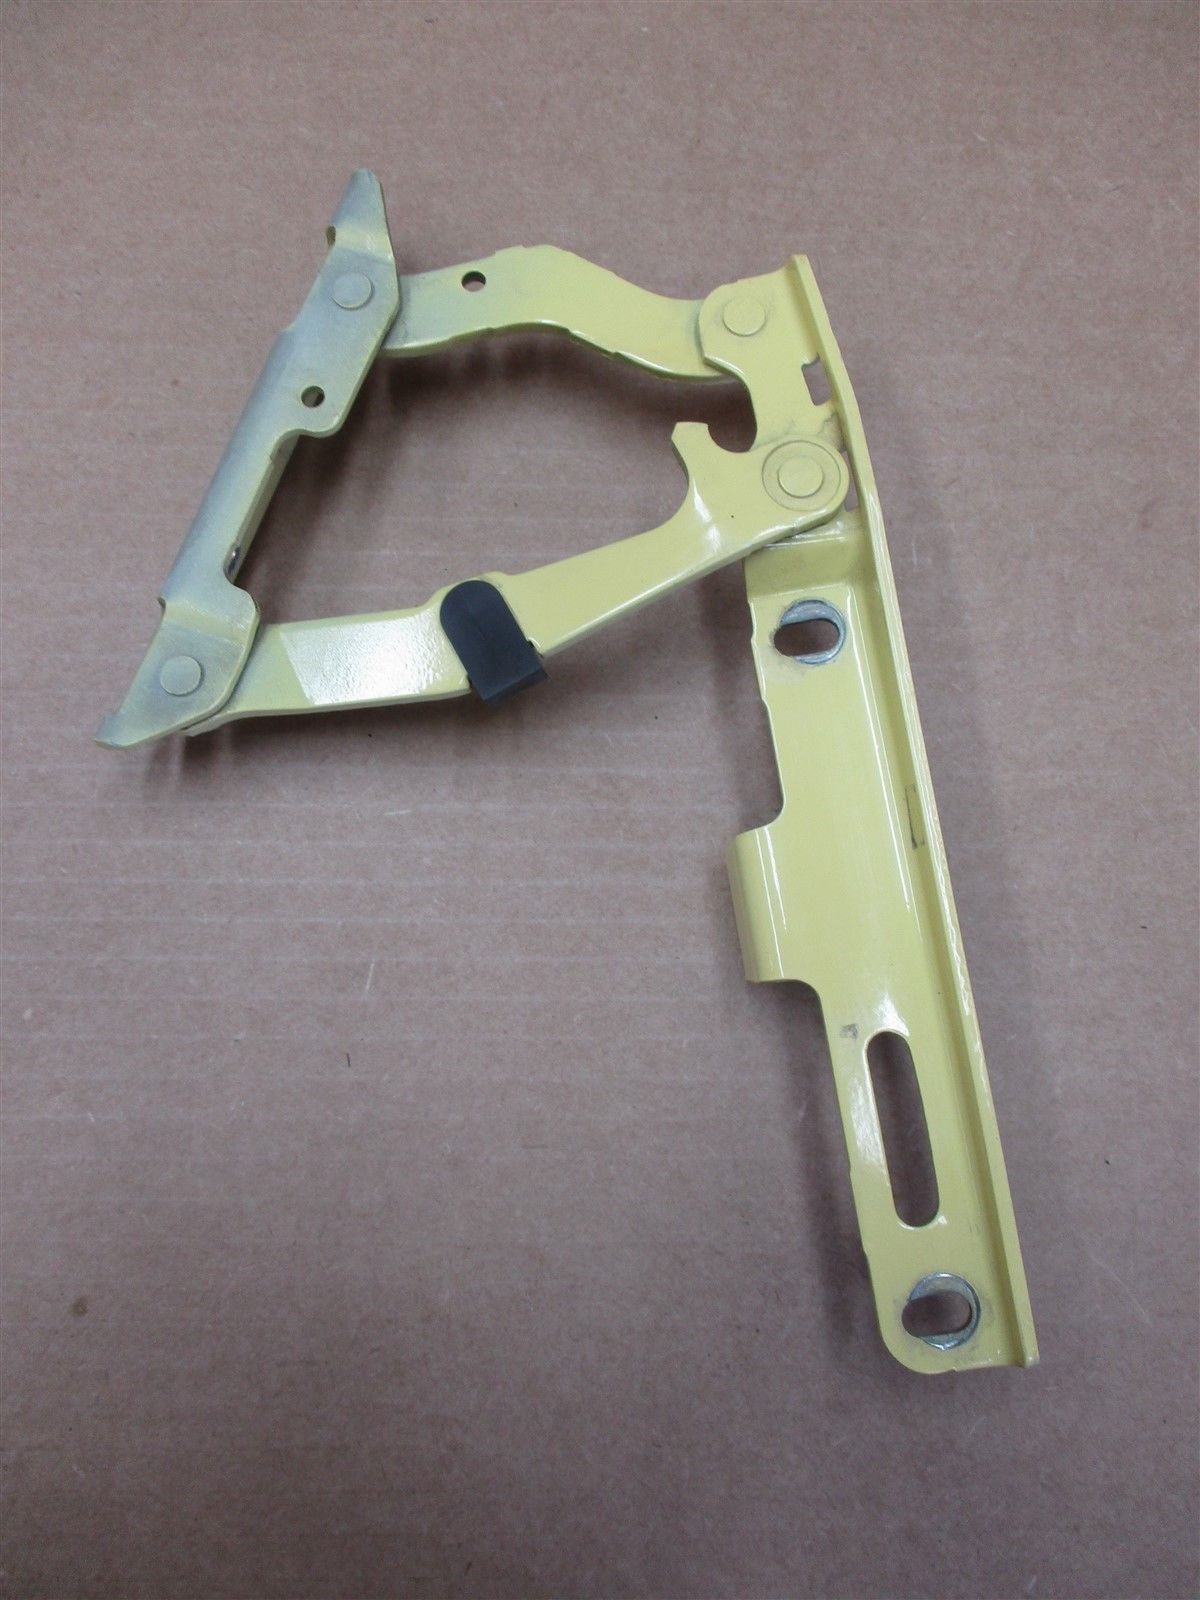 99 Carrera 911 RWD Porsche 996 Cabrio L R REAR TRUNK HINGES 99651215101 92,499